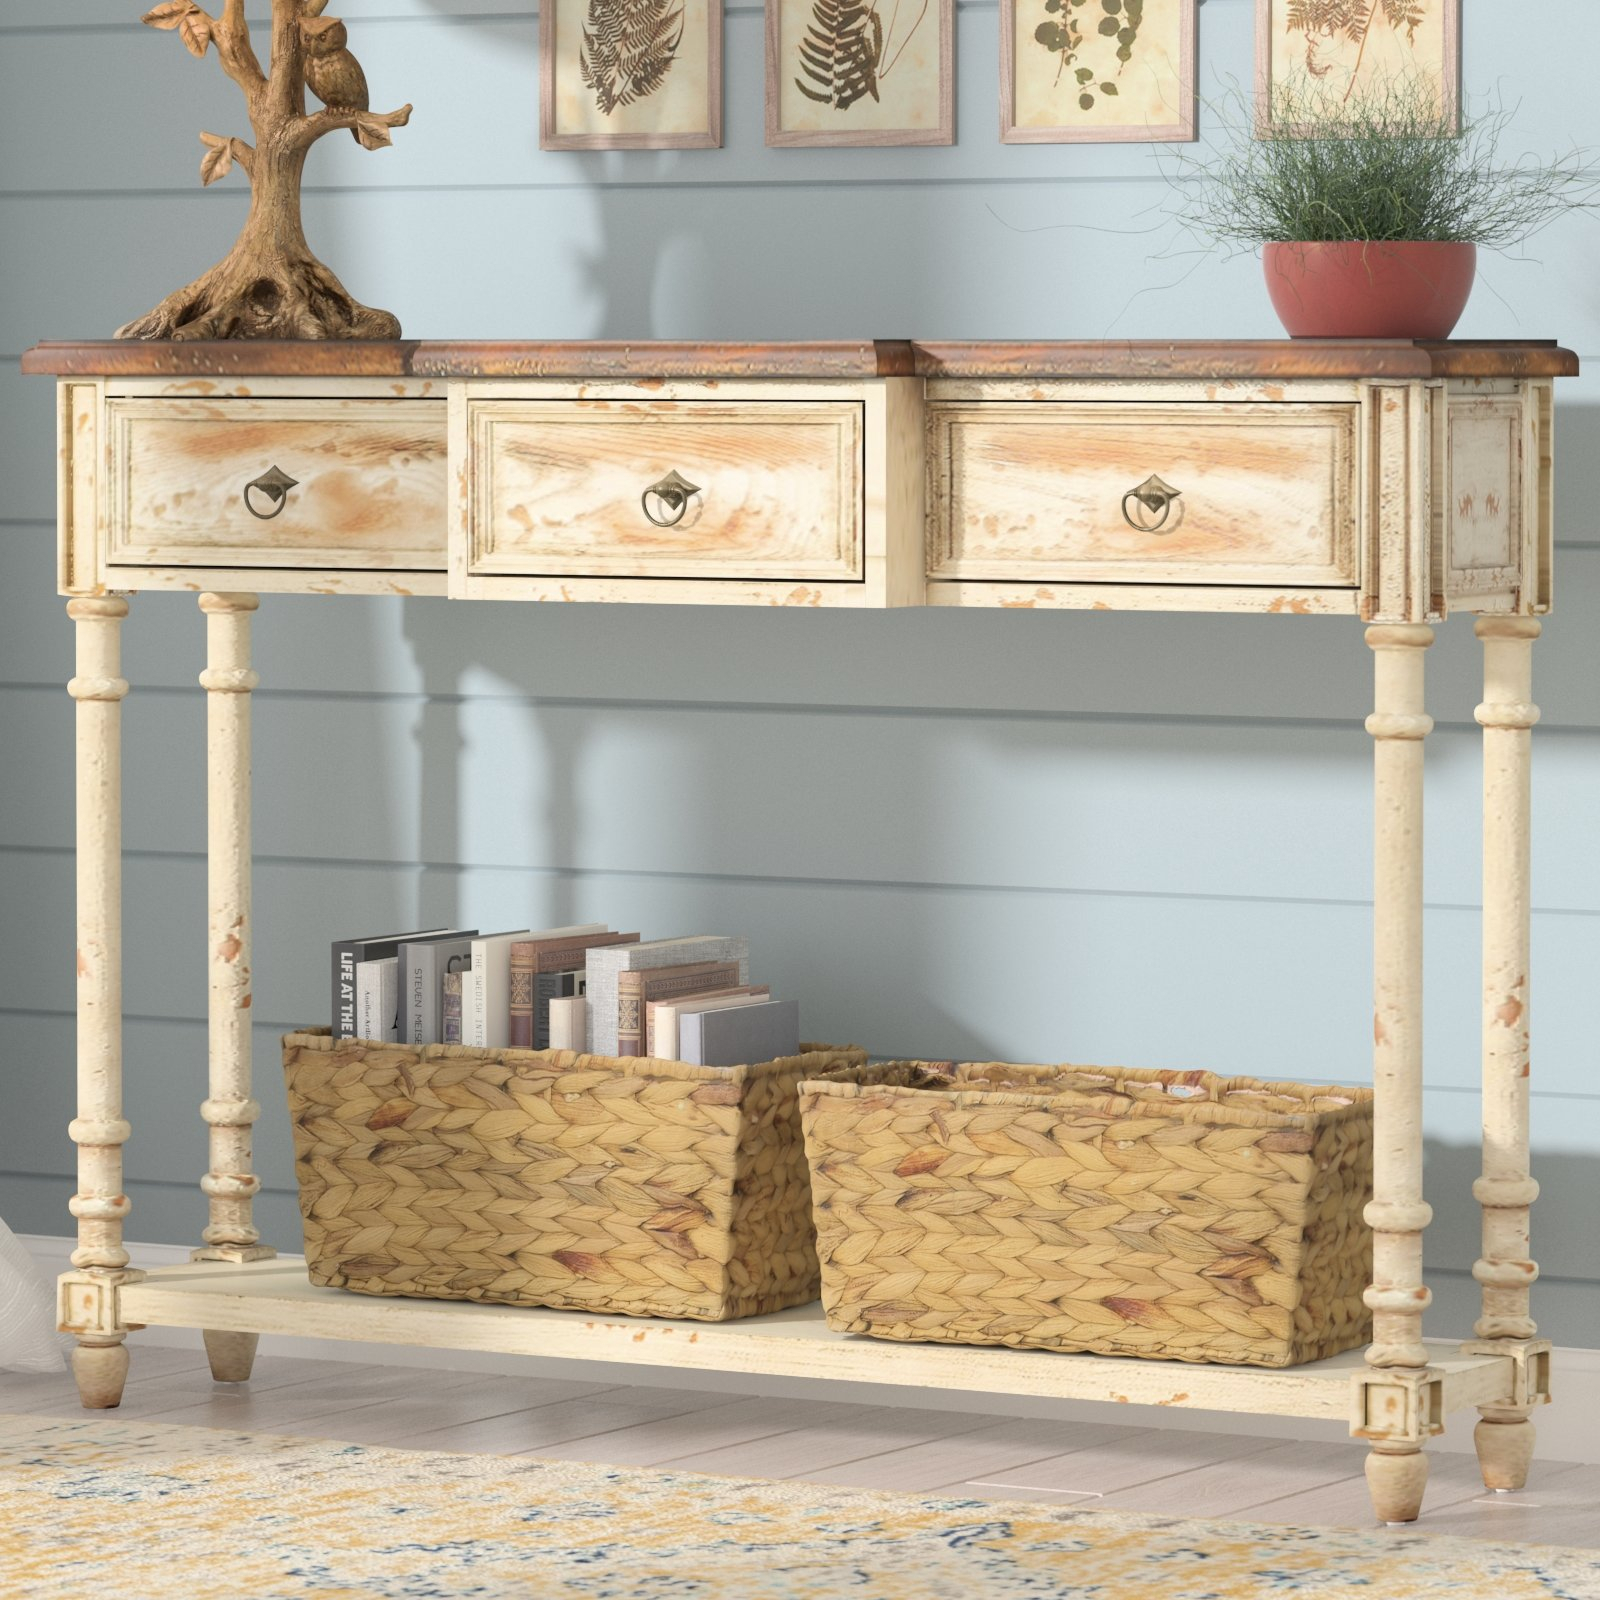 Console Tables With Storage You'll Love | Wayfair throughout Oak & Brass Stacking Media Console Tables (Image 4 of 30)